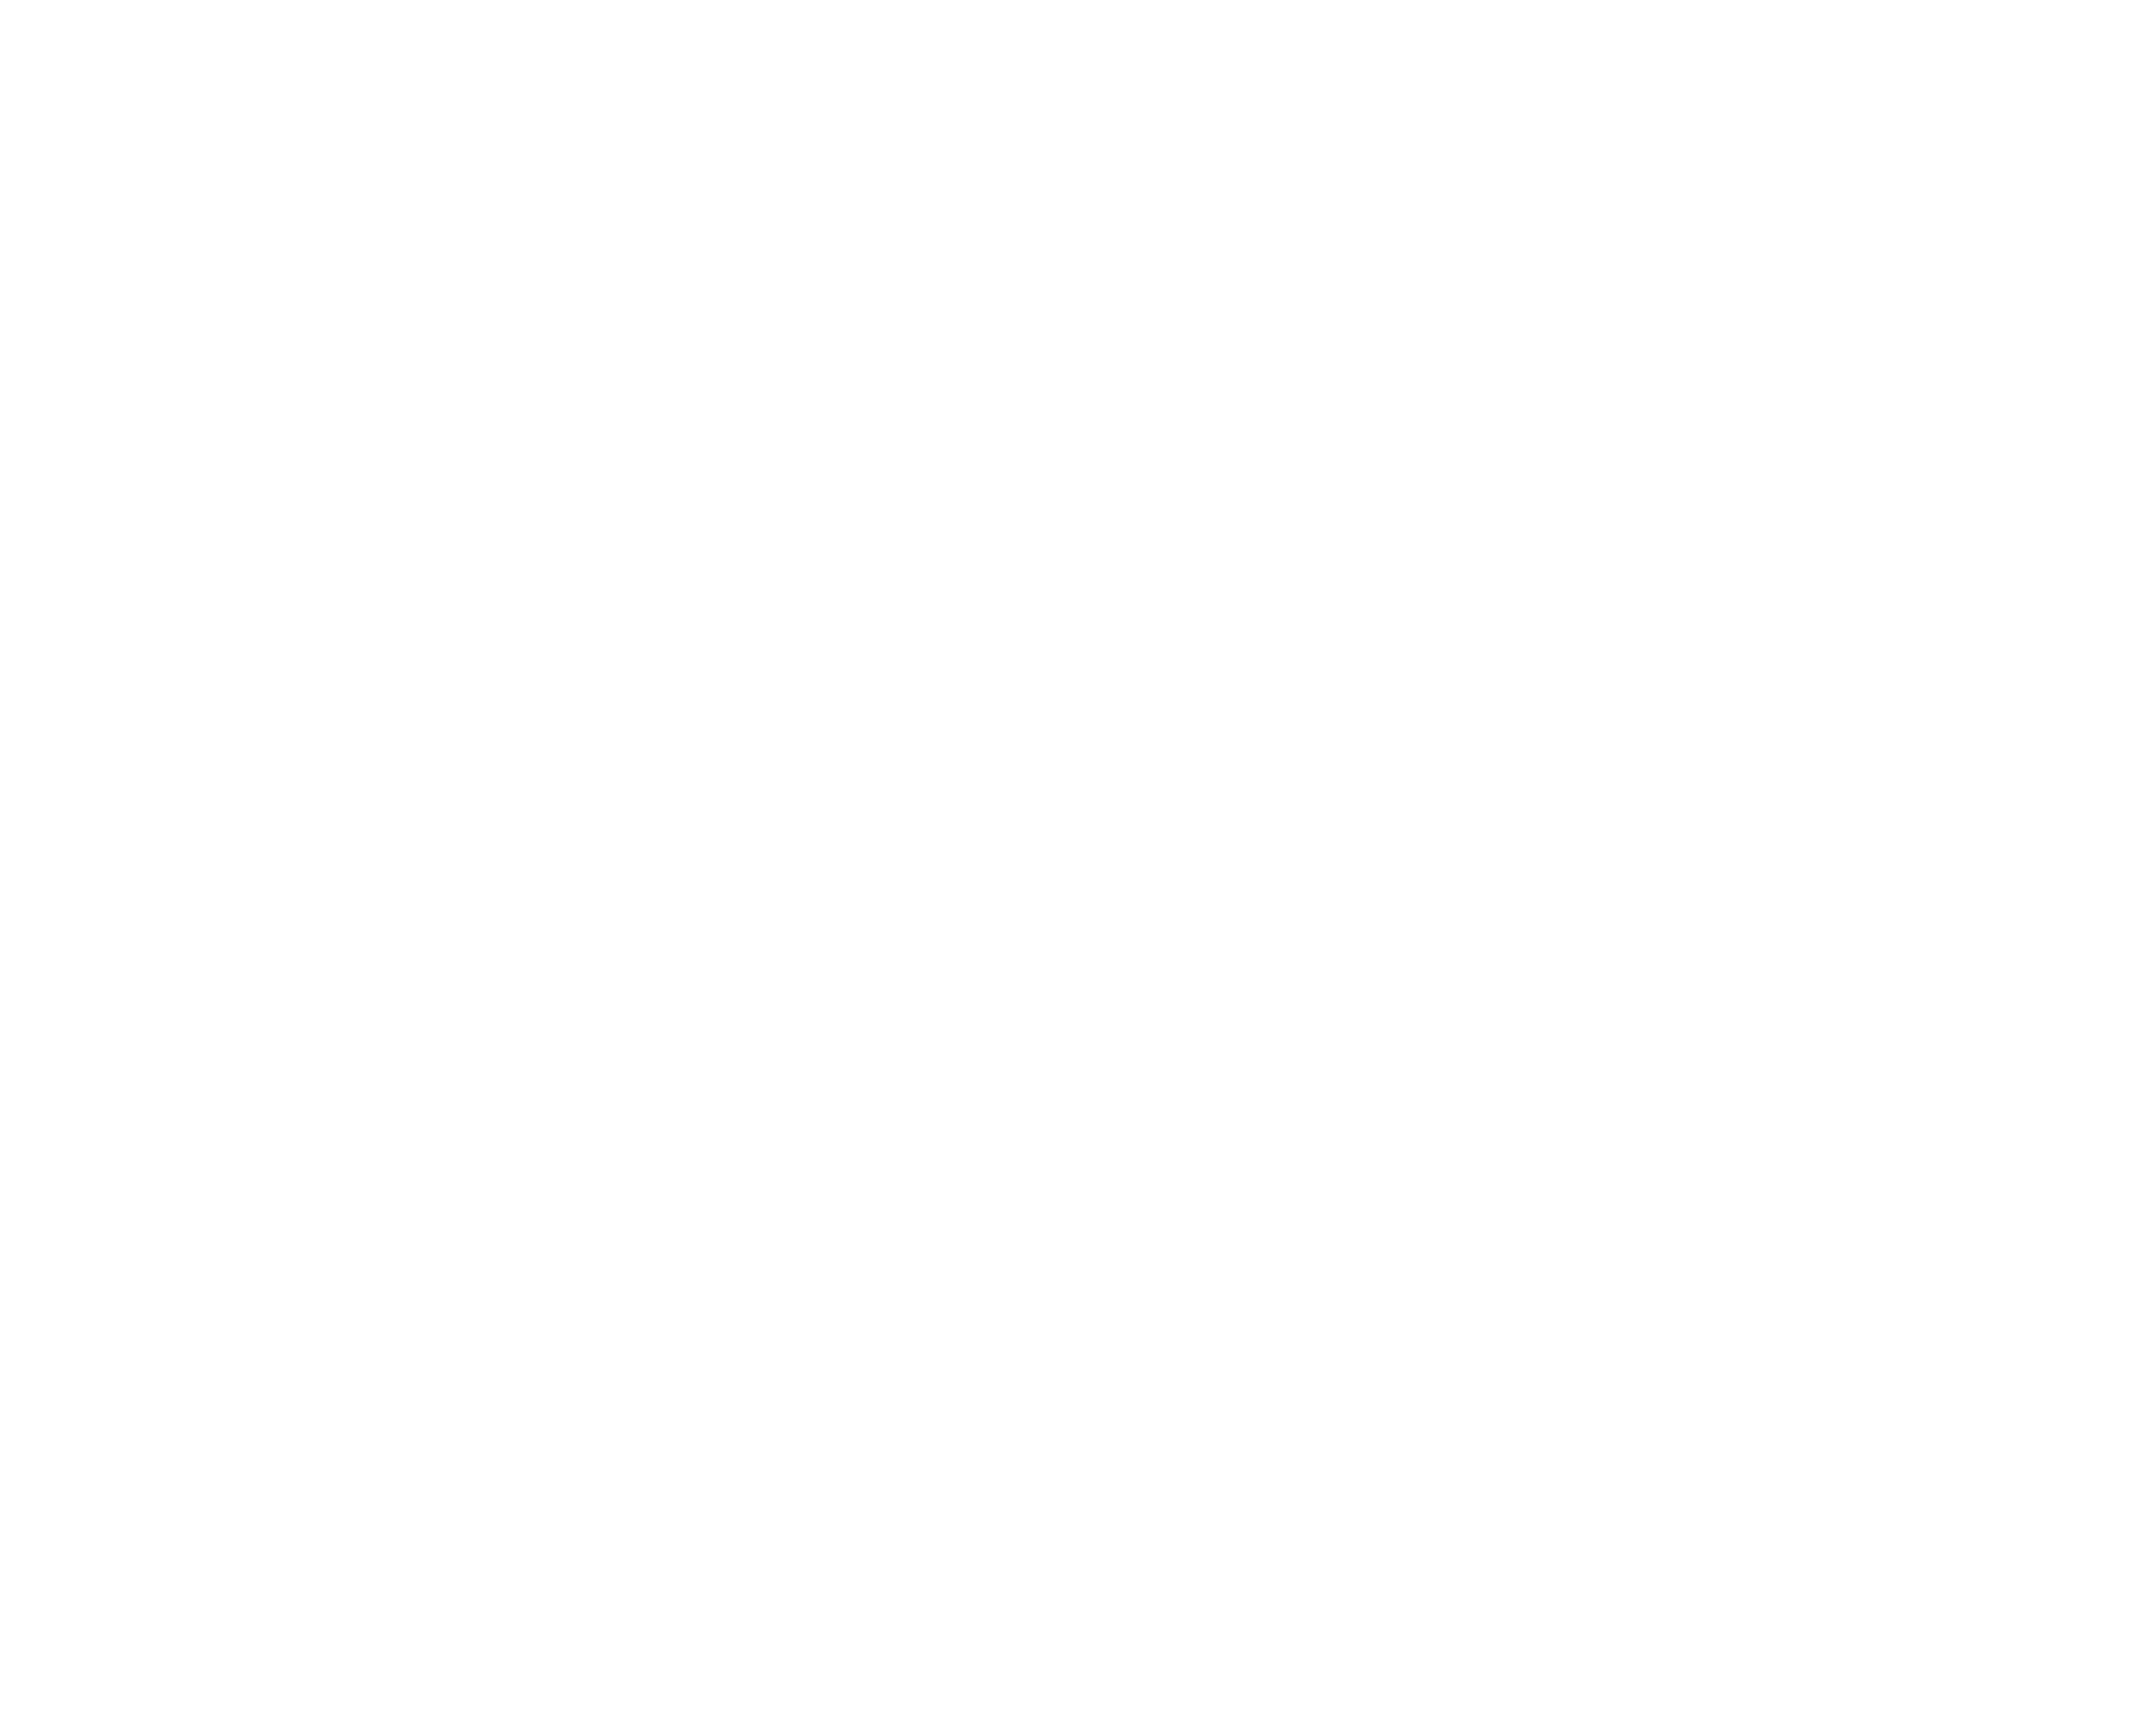 Realtree United Country